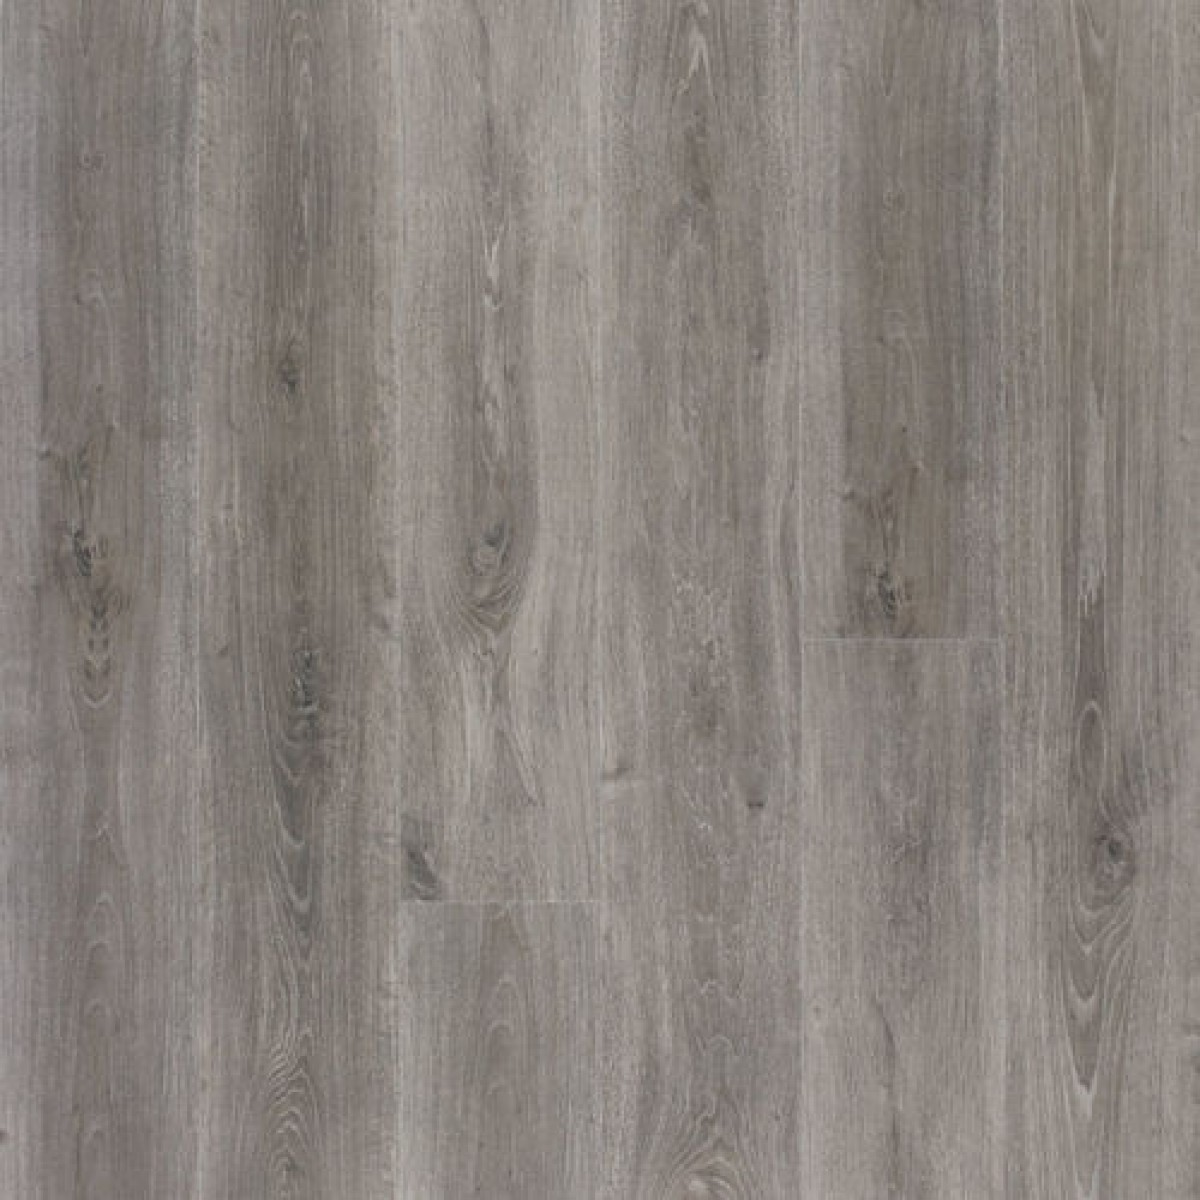 Project besides Slab Brown Marble Ebano Texture Seamless 01969 together with Small Bahay Kubo Design additionally Travertine Floor Tile Texture Seamless 14674 furthermore Anytime Fitness Doncaster. on bamboo flooring